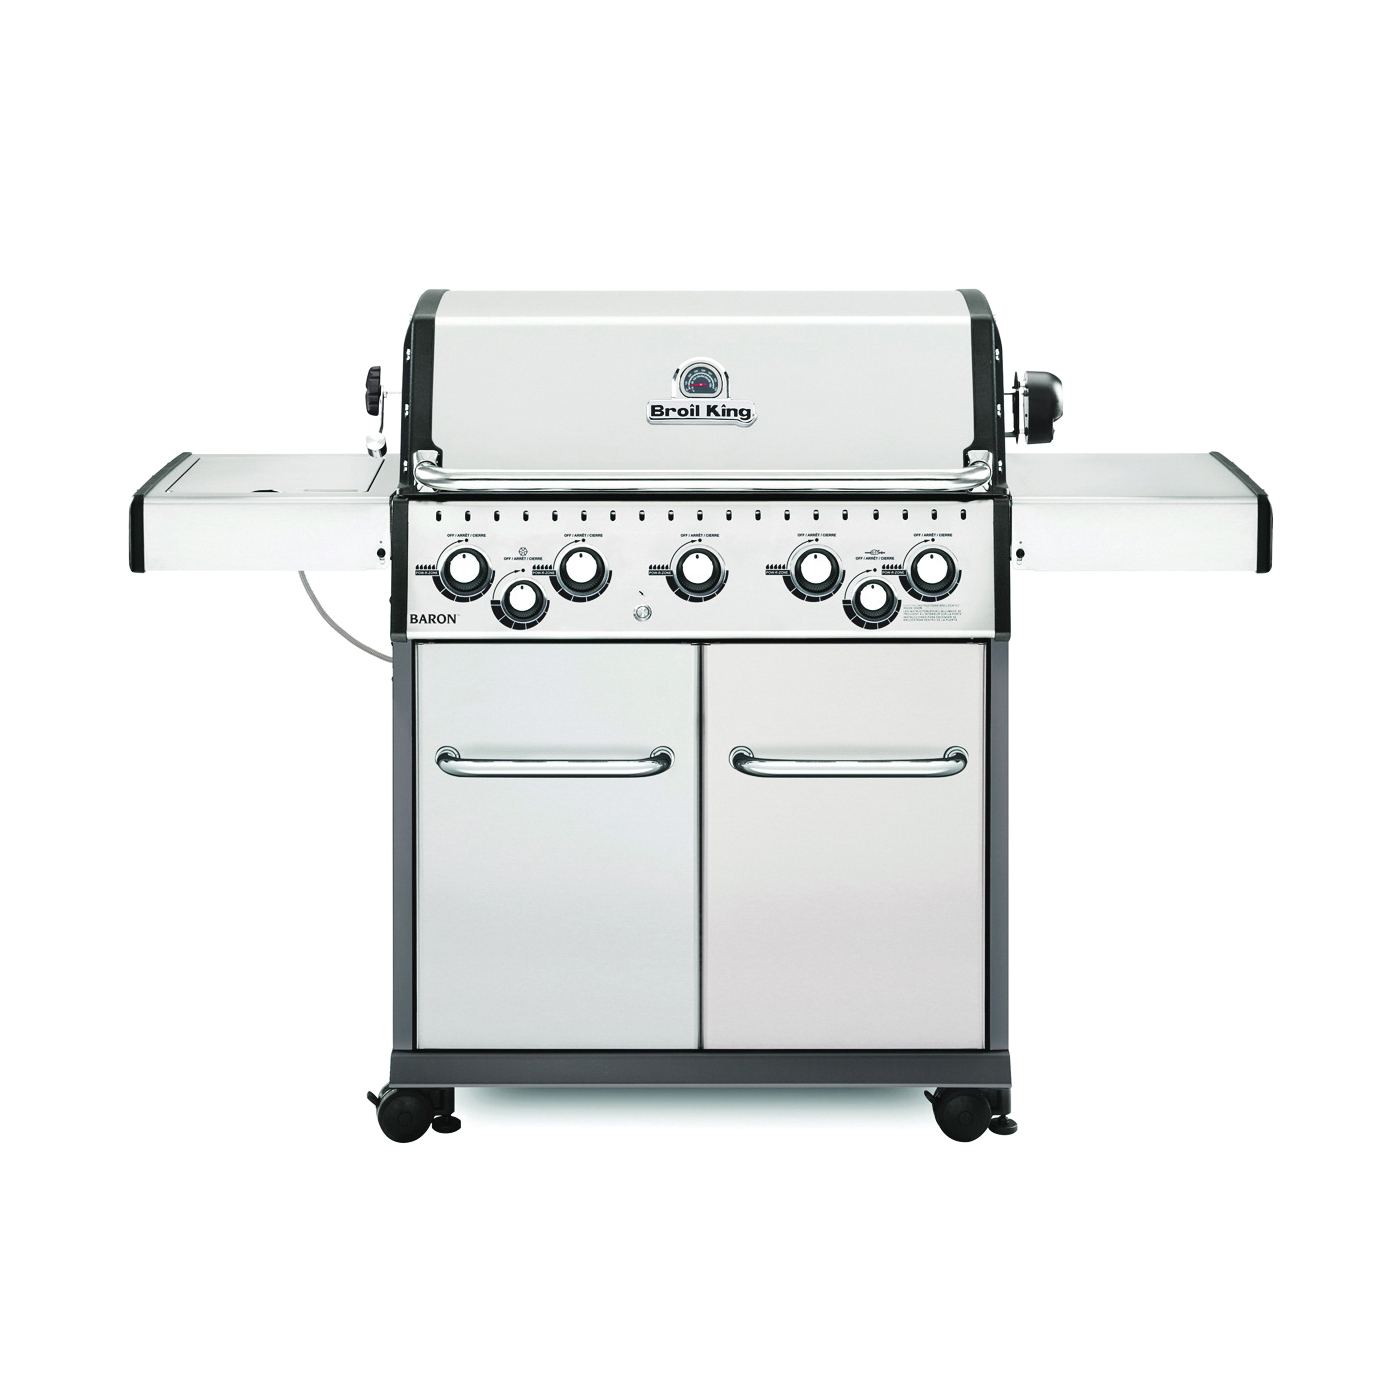 Picture of Broil King Baron 923587 Gas Grill, 50000 Btu/hr BTU, Natural Gas, 5 -Burner, 555 sq-in Primary Cooking Surface